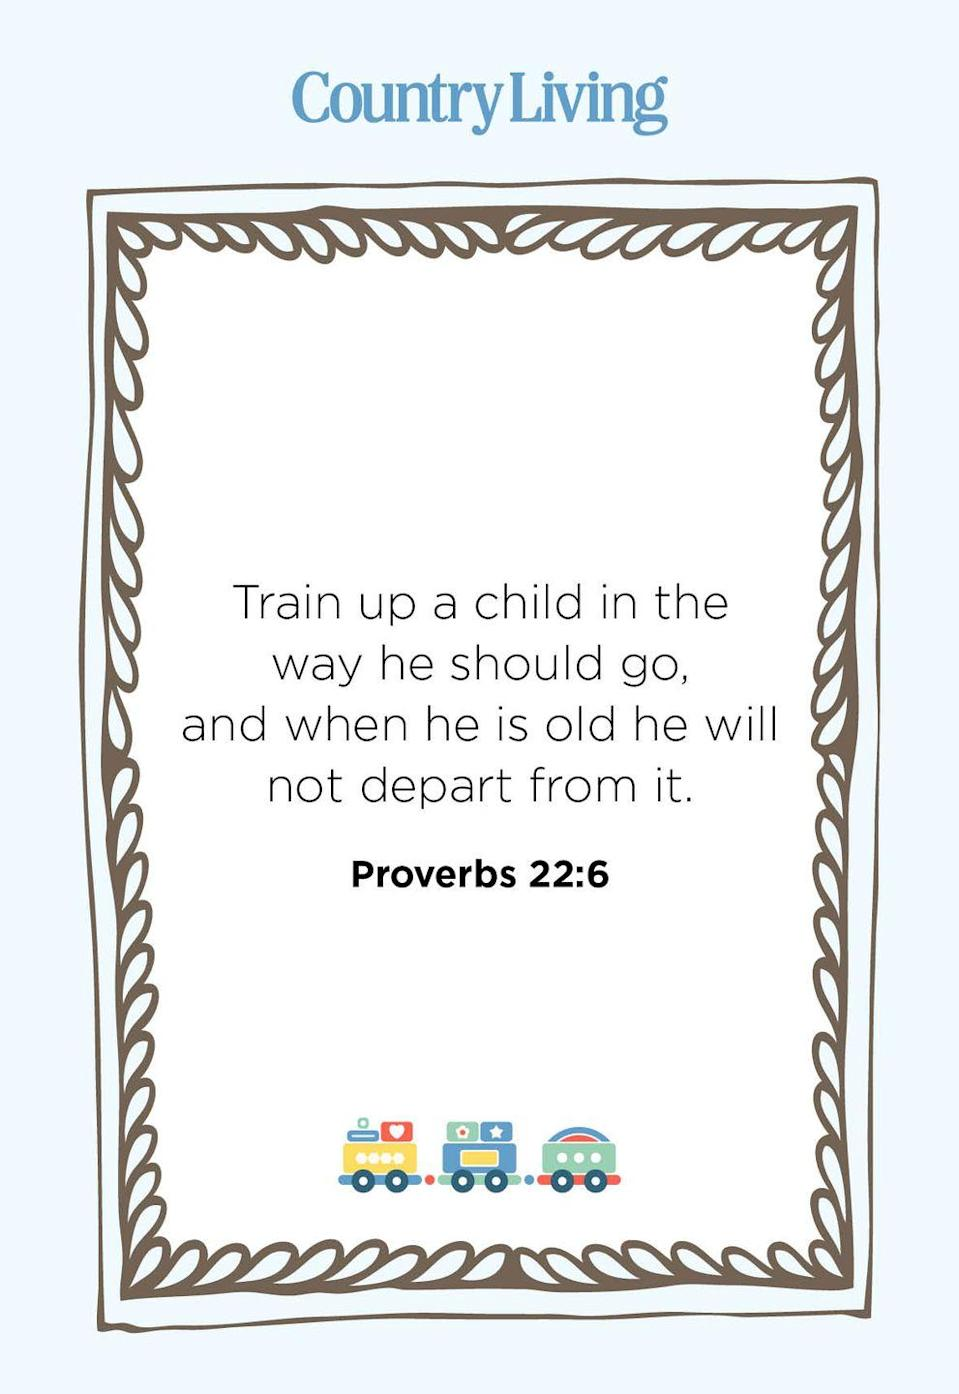 """<p>""""Train up a child in the way he should go, and when he is old he will not depart from it.""""</p>"""